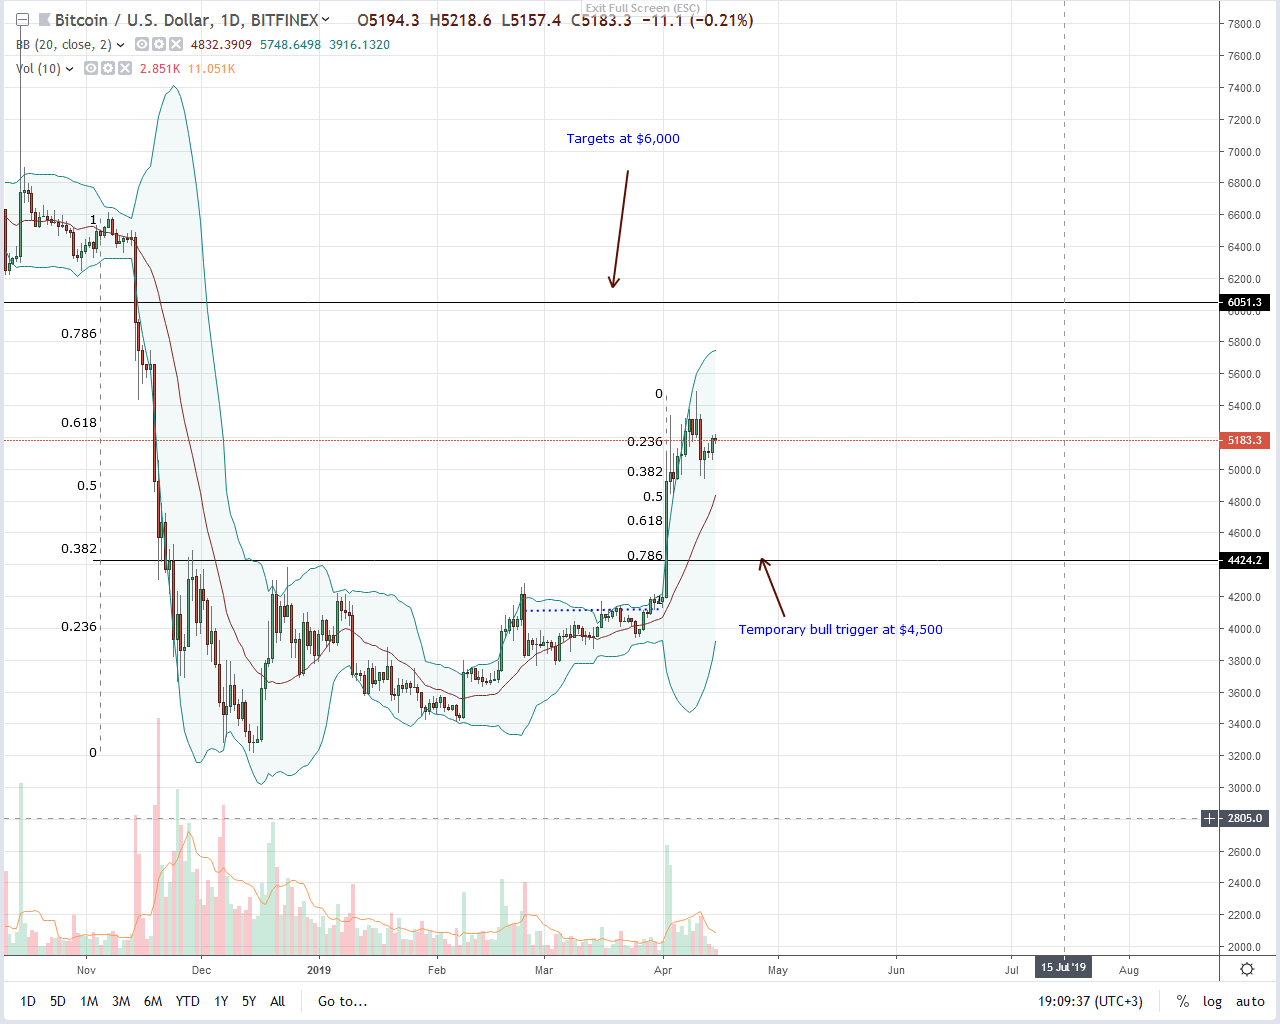 Bulls Chorus, Bitcoin (BTC) Steady above $5,000 despite Liquidation Risks